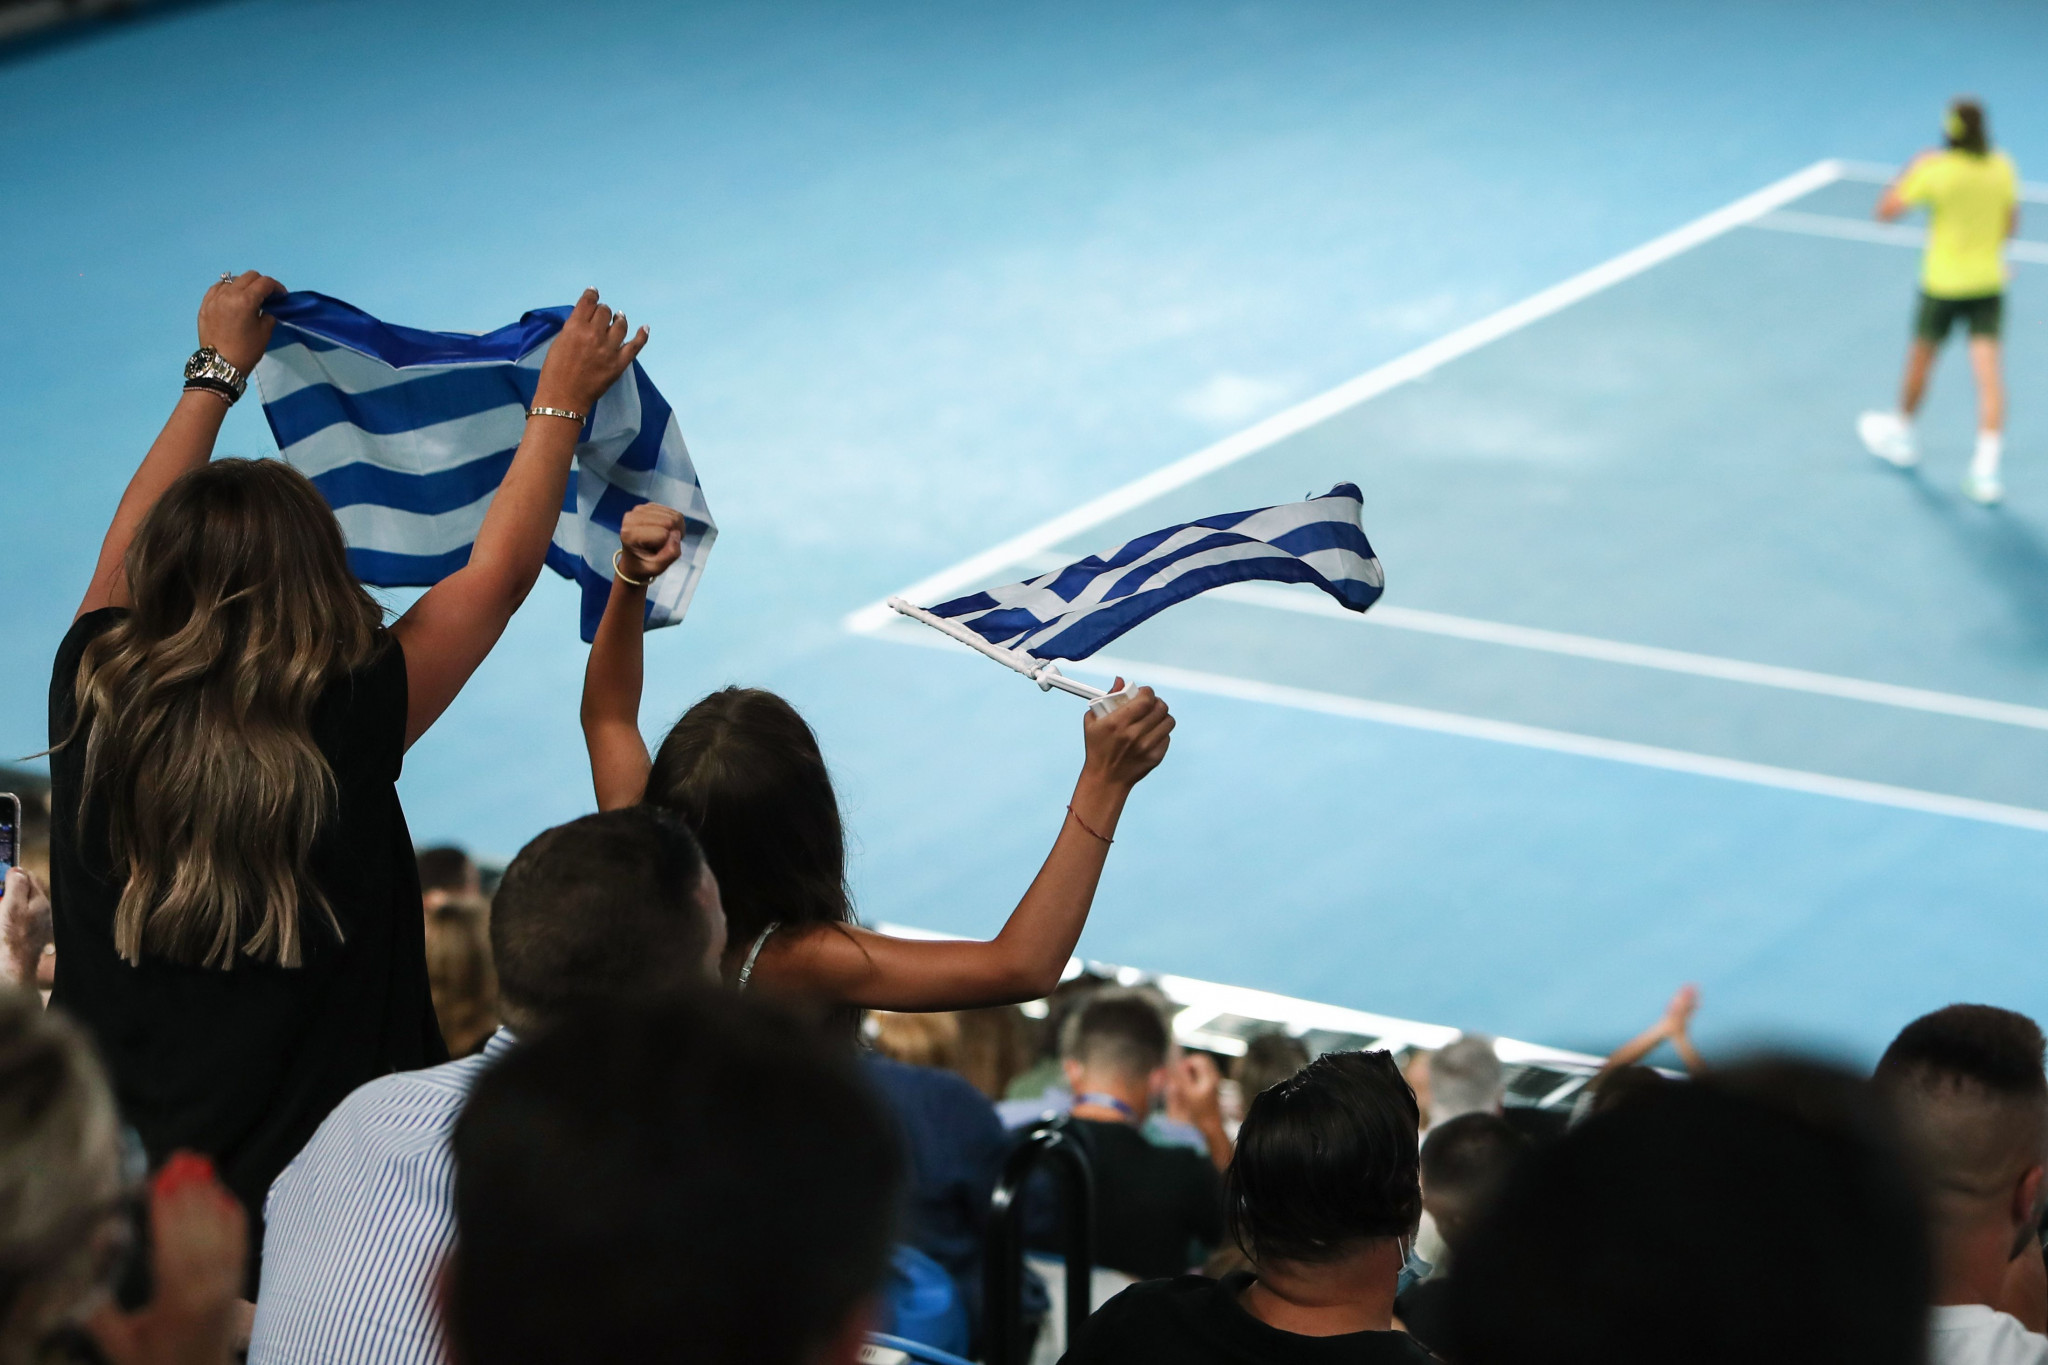 Greece's Stefanos Tsitsipas was well supported in the crowd ©Getty Images